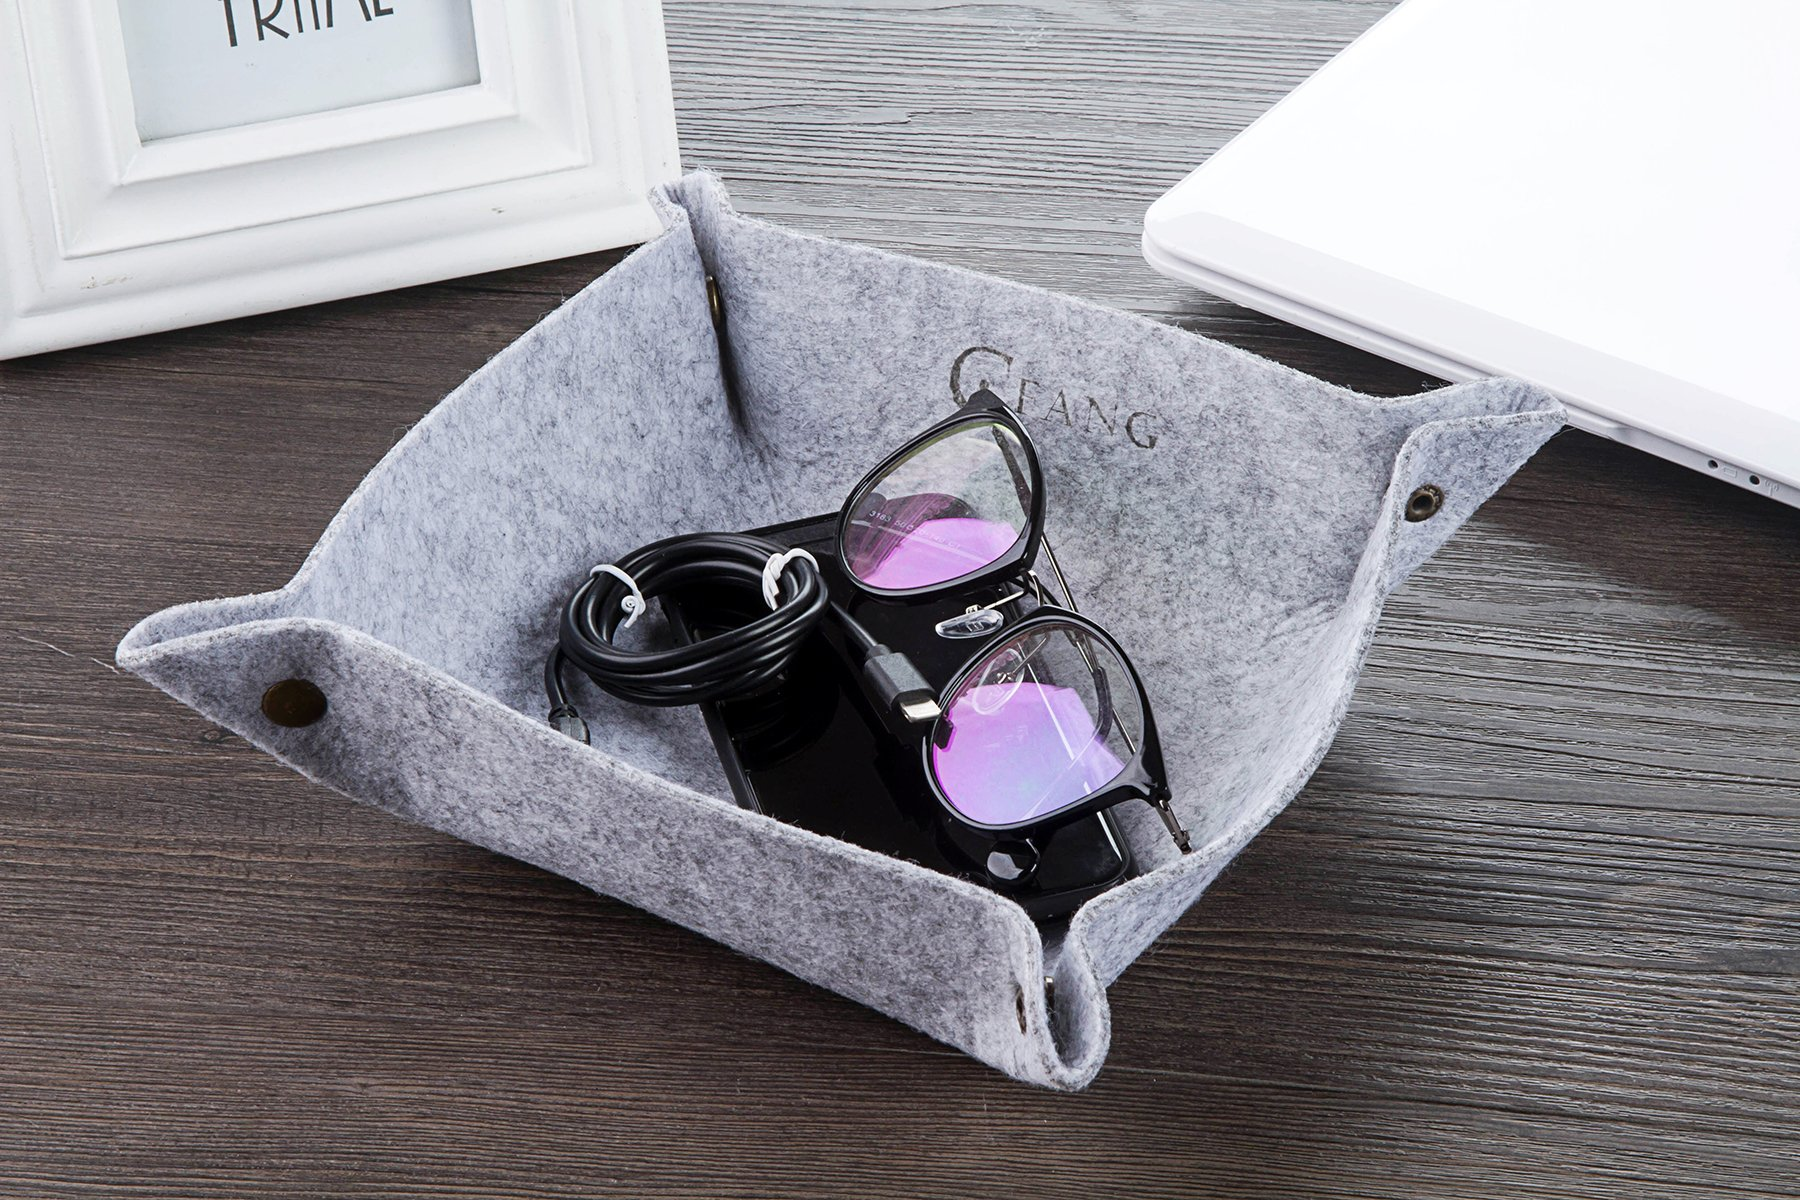 Jewelry, Key, Cell Phone, Wallet, Watches Tray Display Organizer Bedside Storage Tray Desktop Storage 9.7\'\'x9.7\'\'-Unfolded for Cup Mat, Mouse Pad